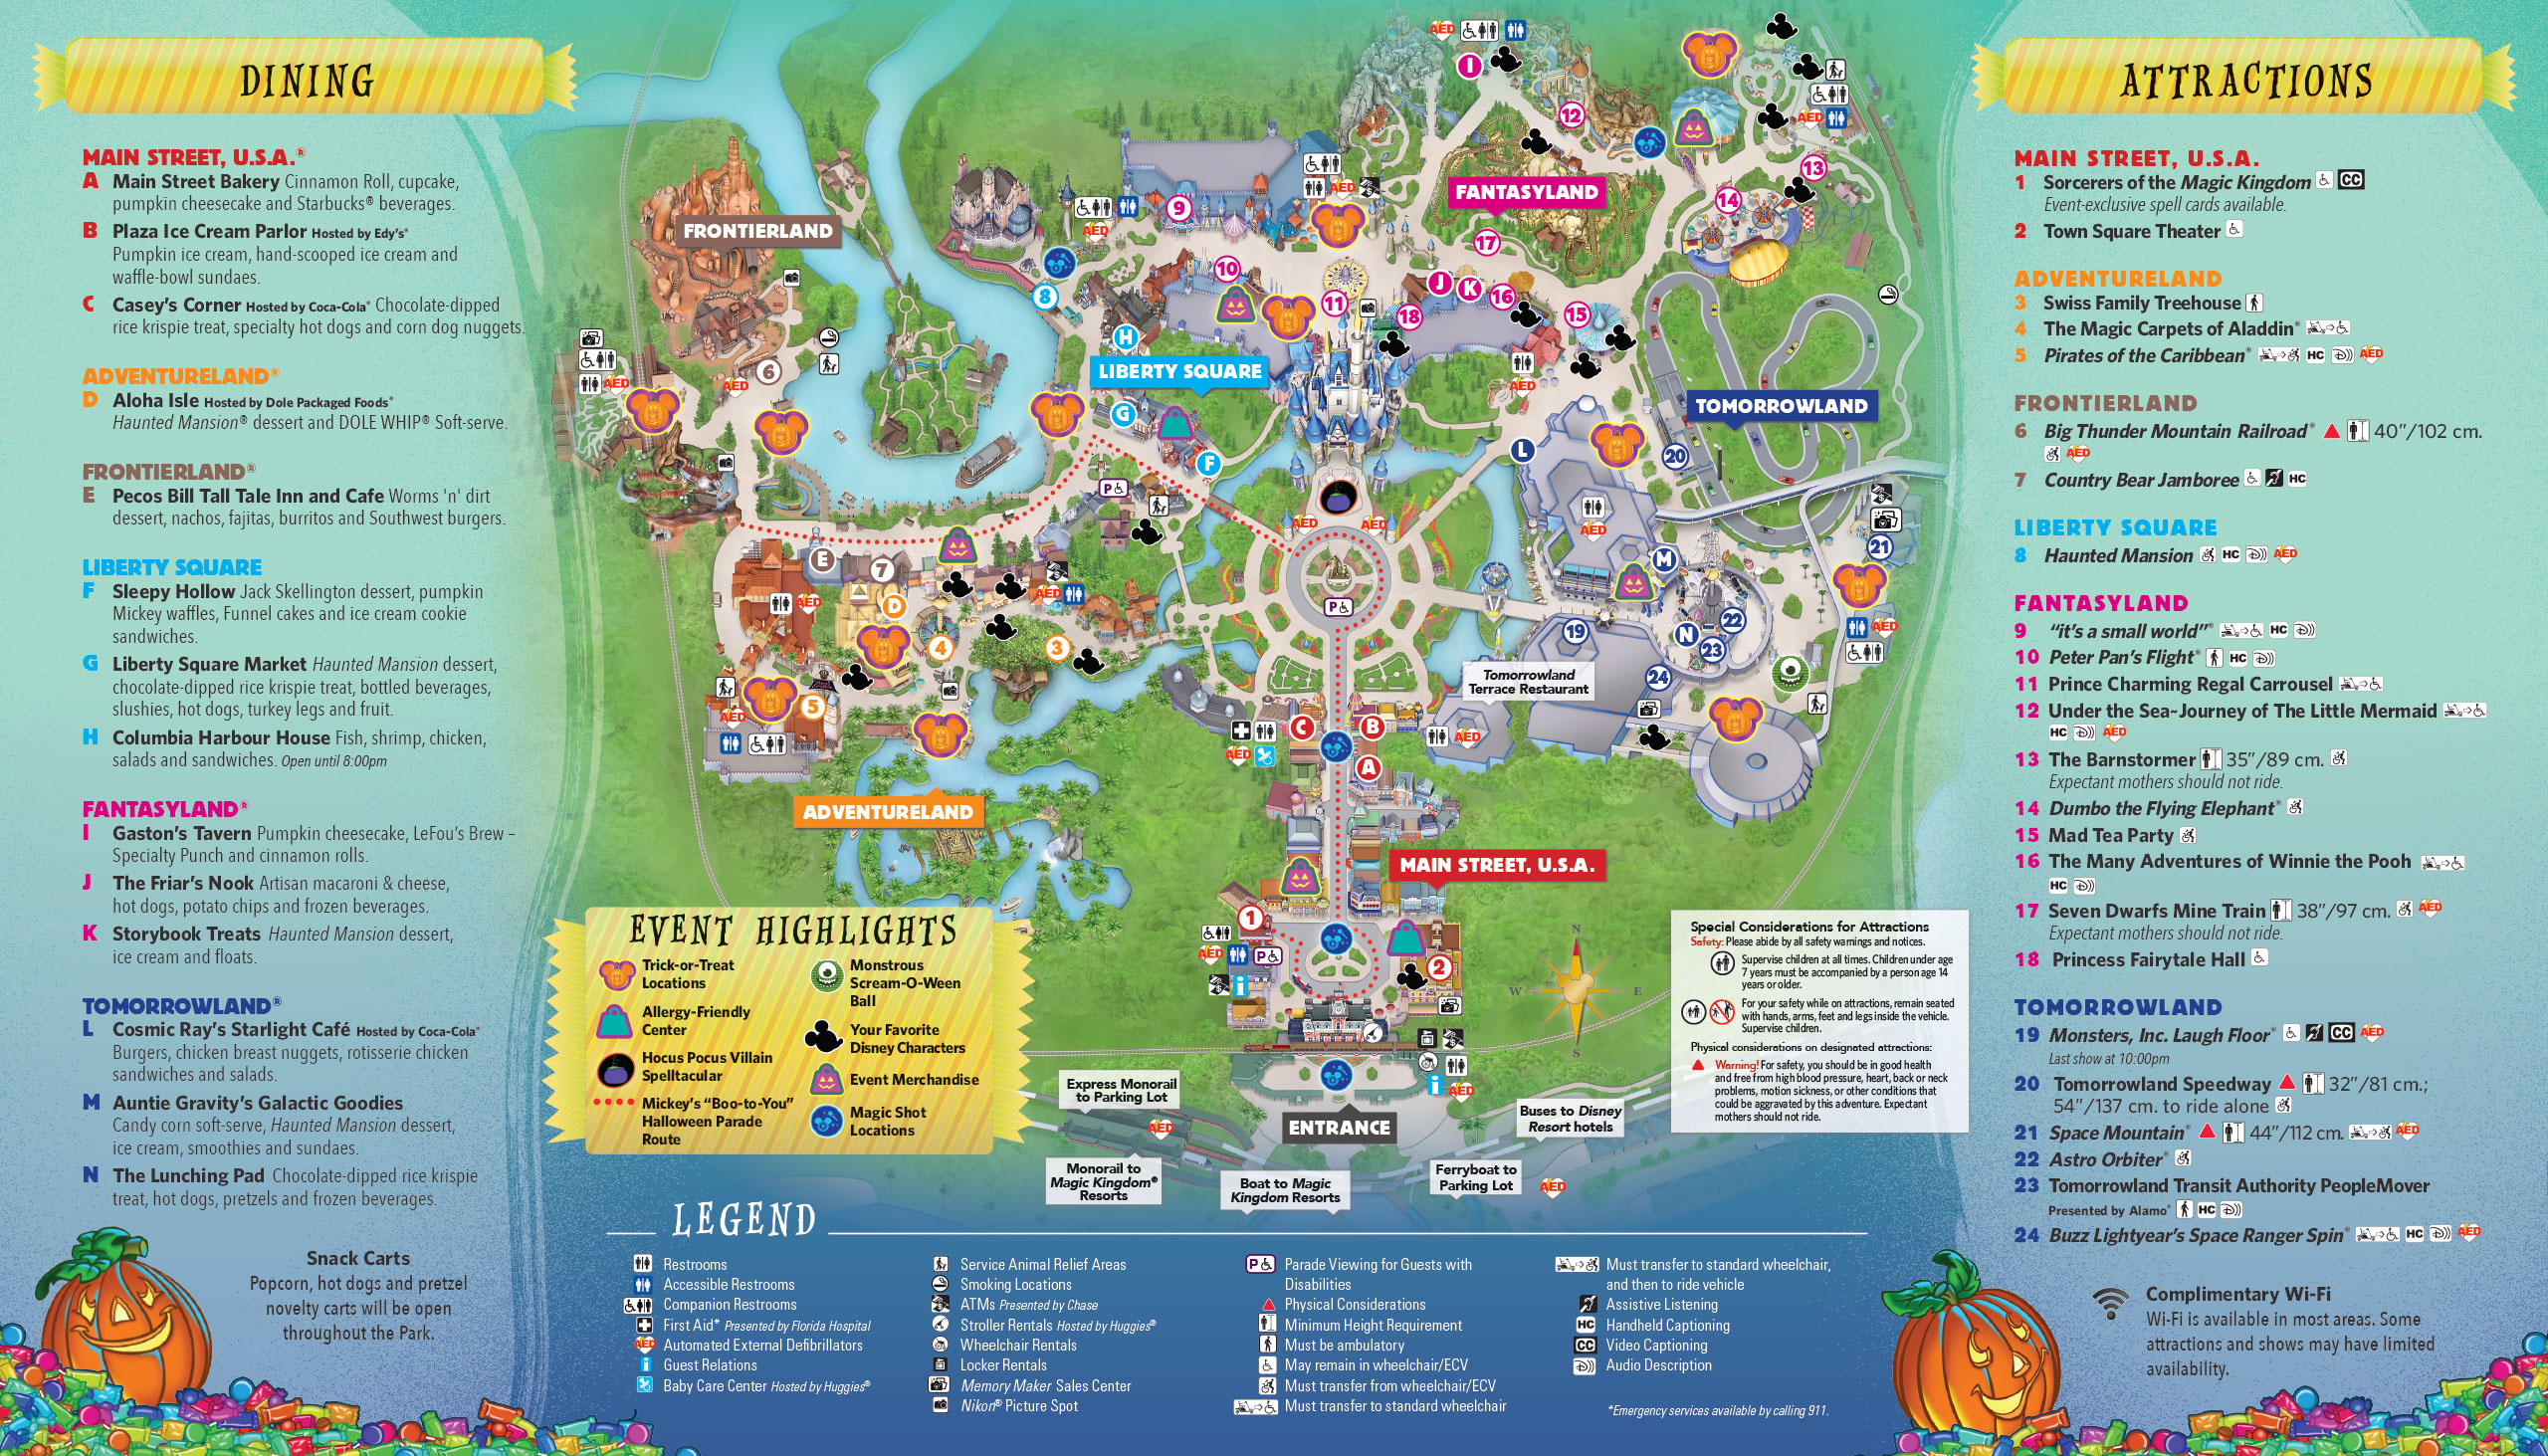 Mickey's Not-So-Scary Halloween Party 2017 guide map - back